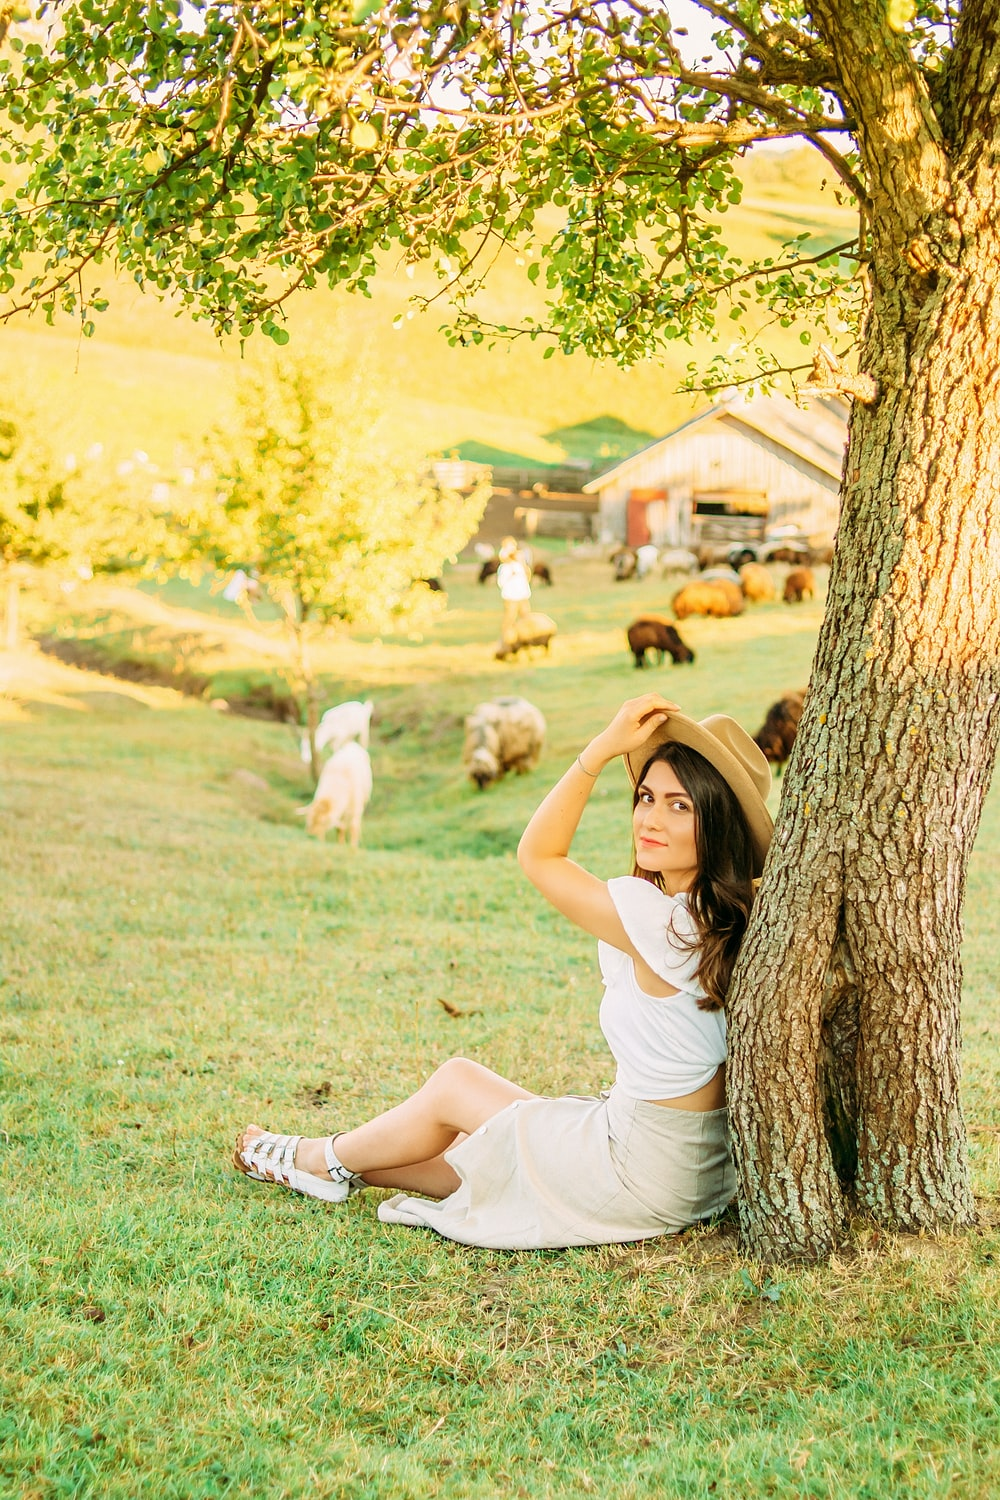 woman in white dress lying on green grass field beside brown and white short coated small